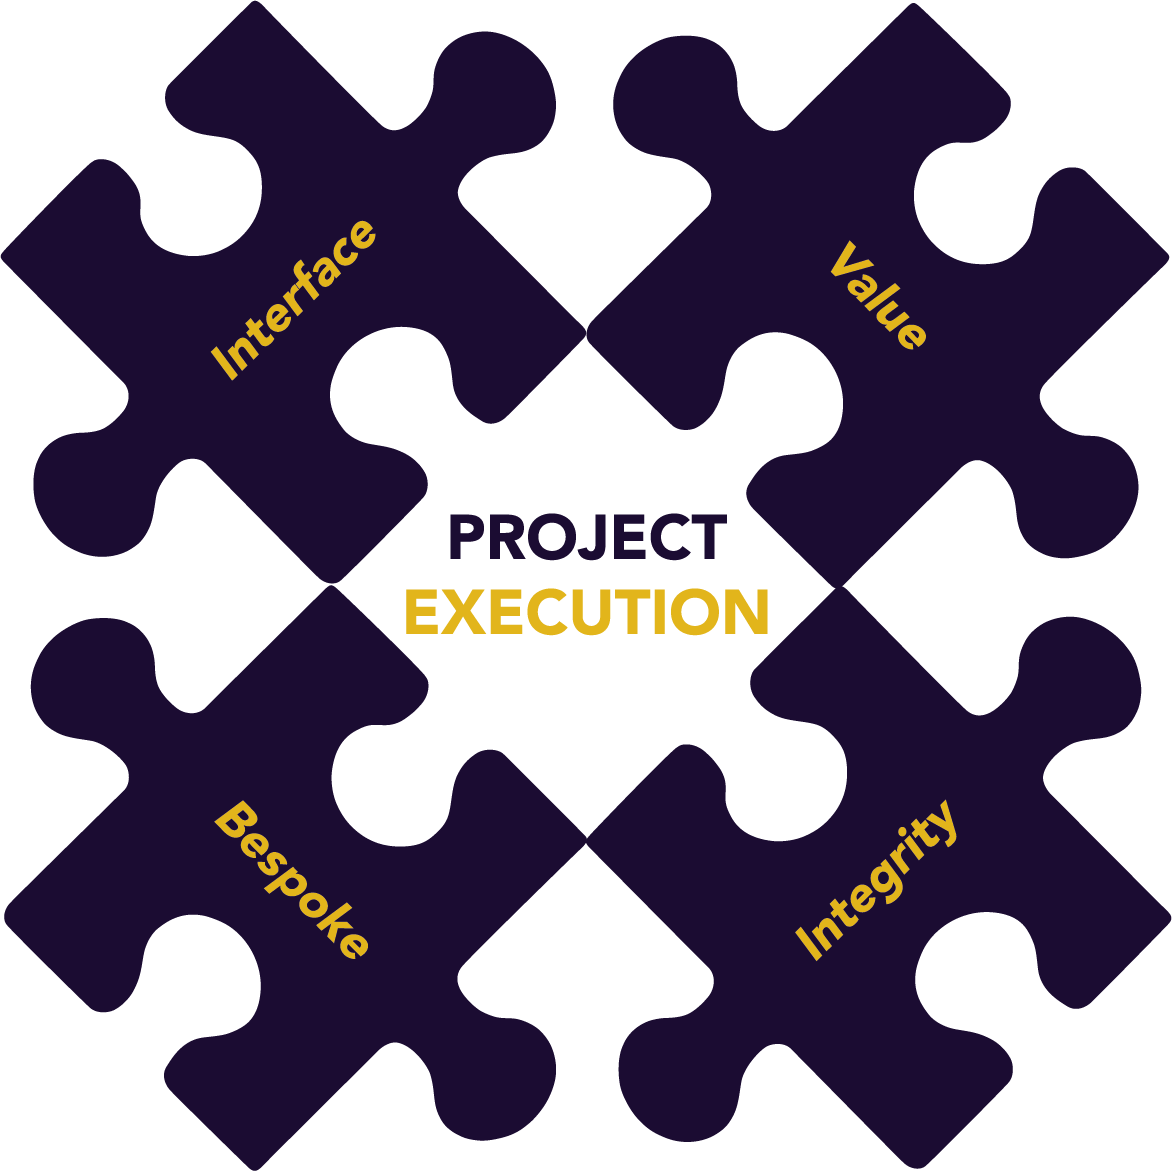 Project_Execution_OL